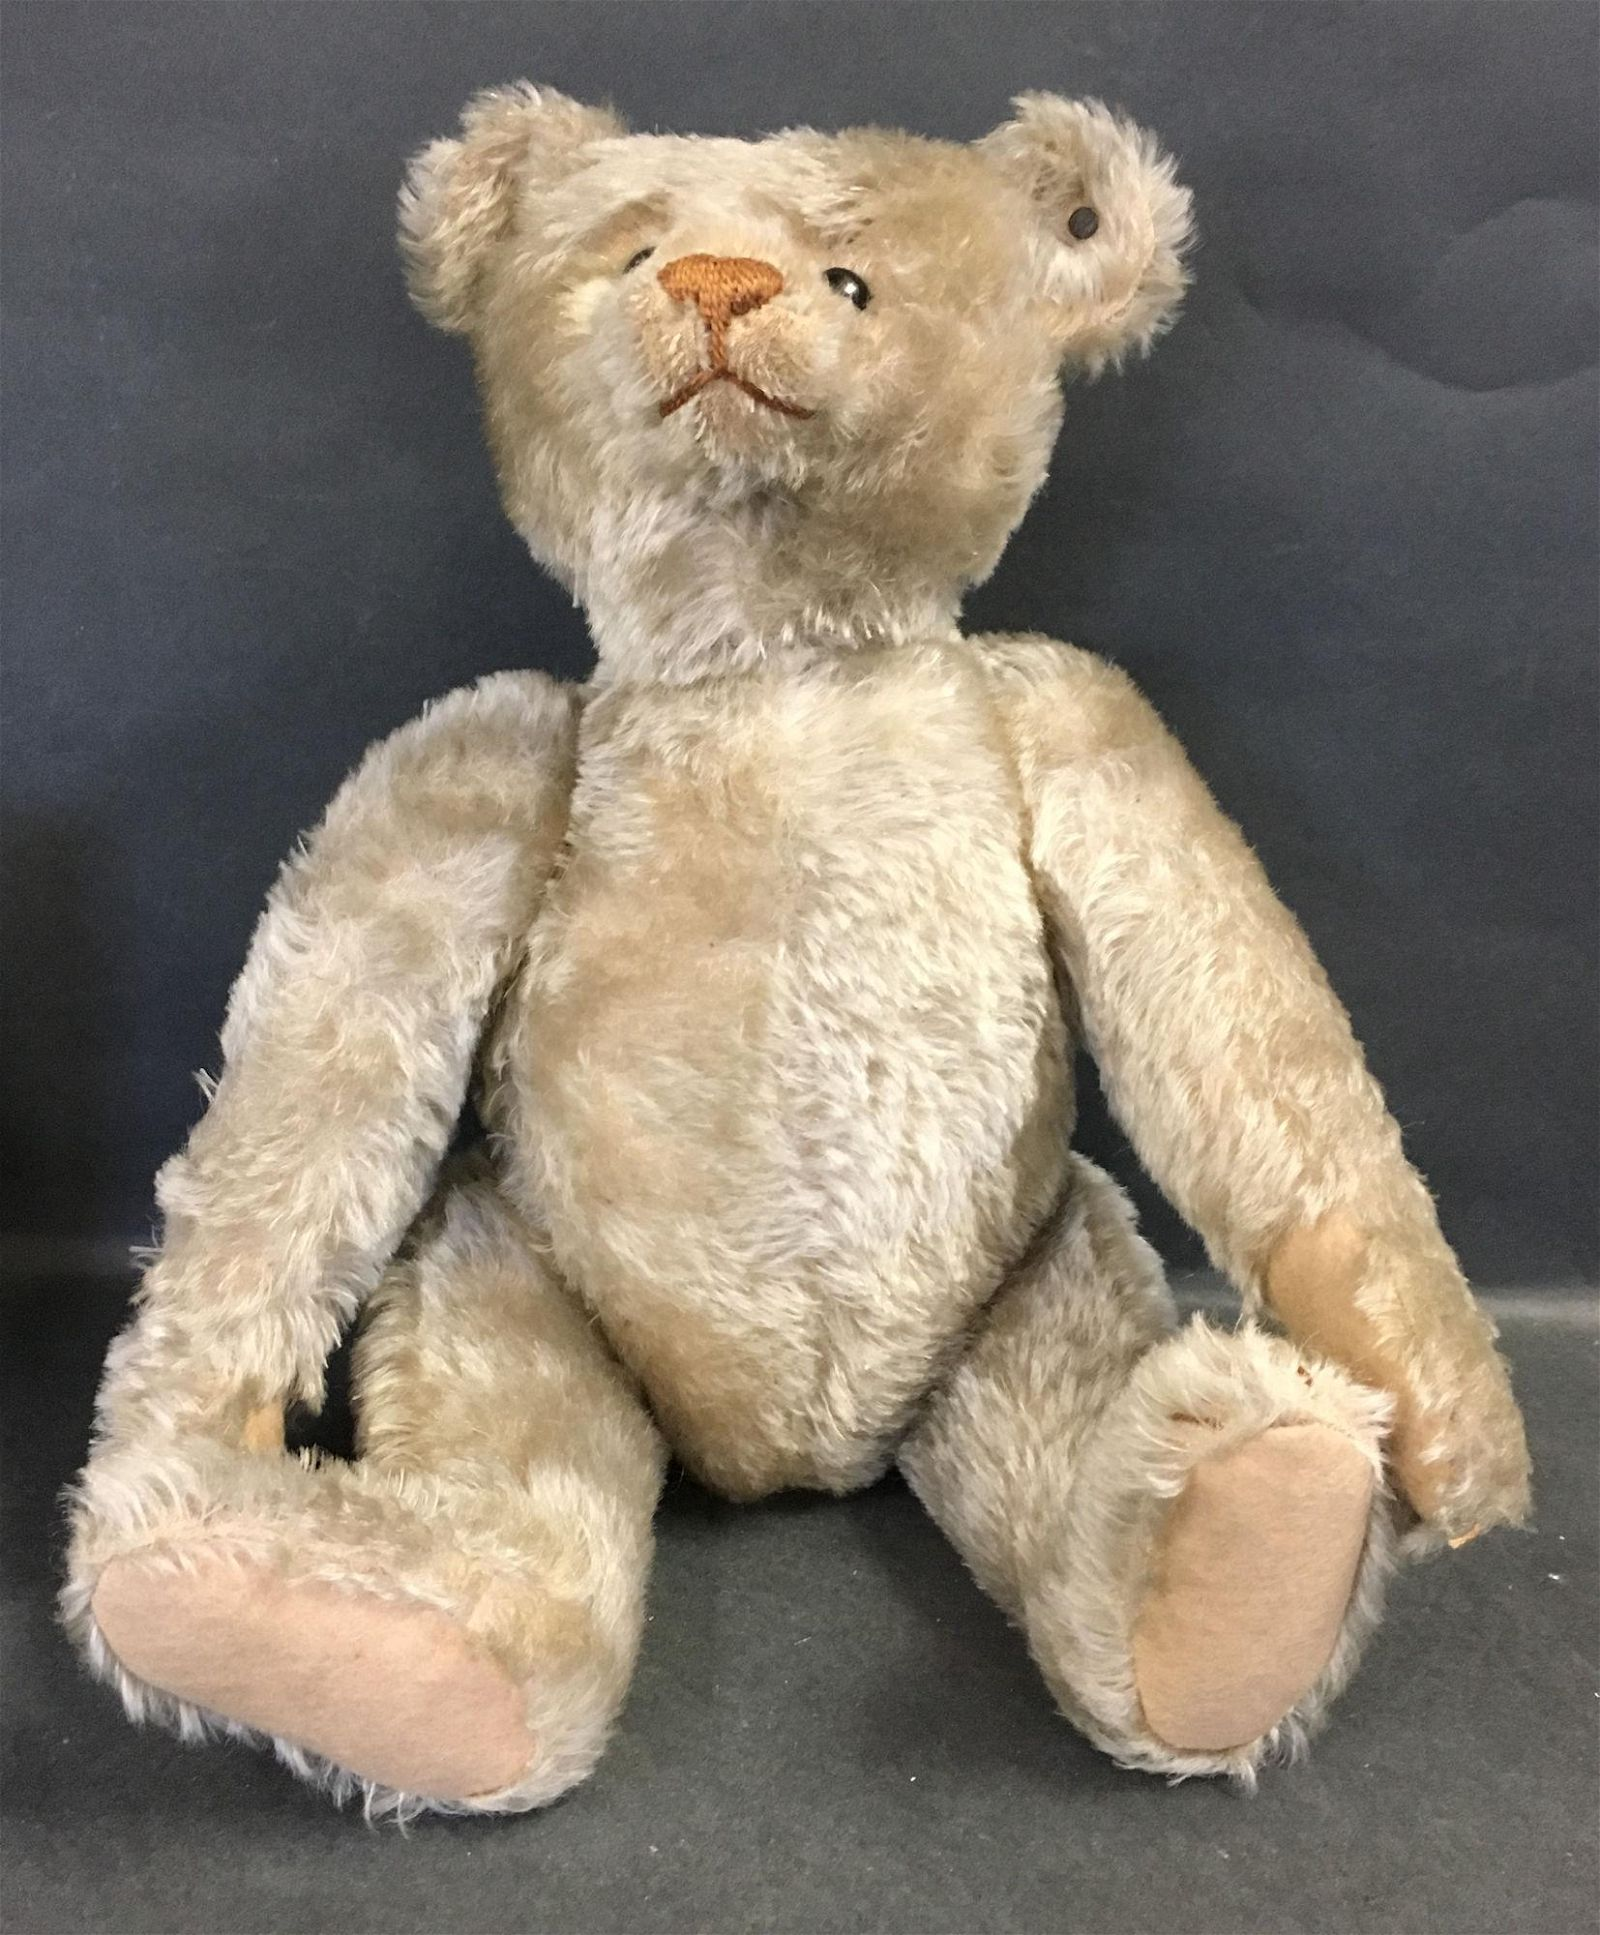 EARLY BLONDE MOHAIR STEIFF TEDDY BEAR. DISK JOINTED AT